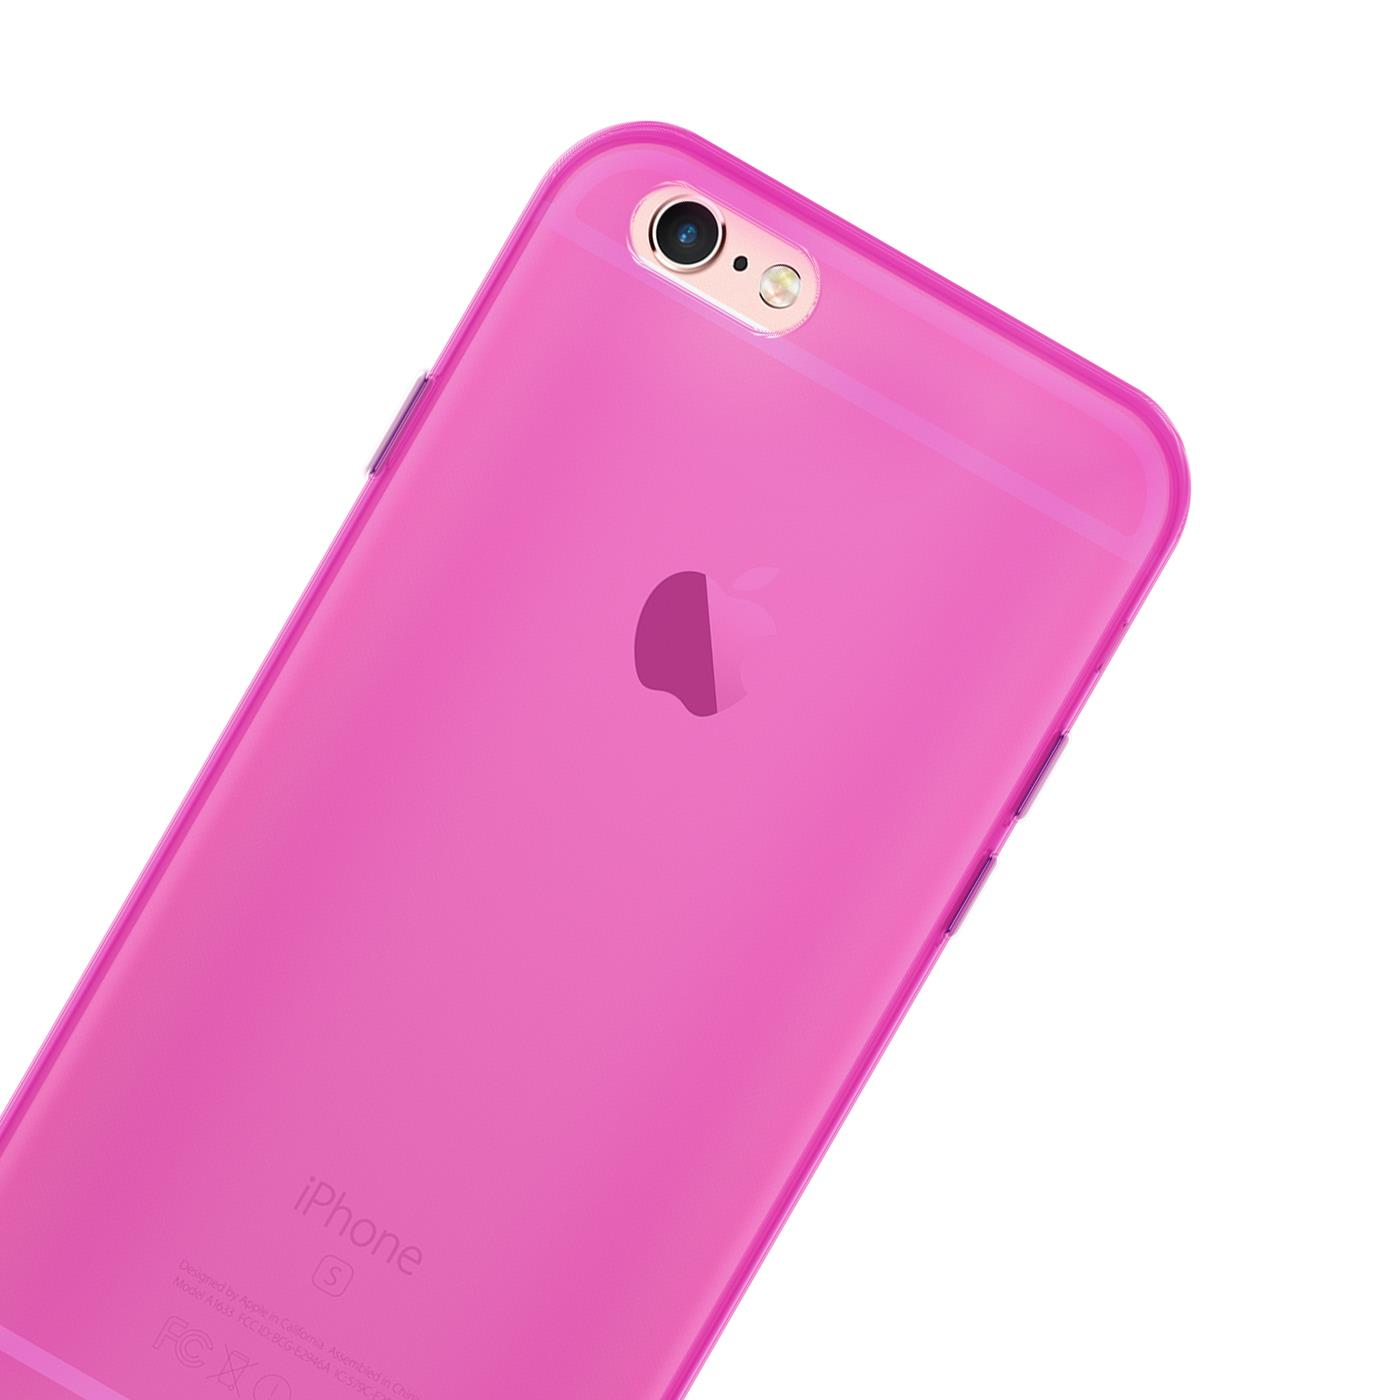 Handy-Huelle-Silikon-Case-Schutz-Tasche-Duenn-Slim-Cover-fuer-Apple-iPhone-Modelle Indexbild 30